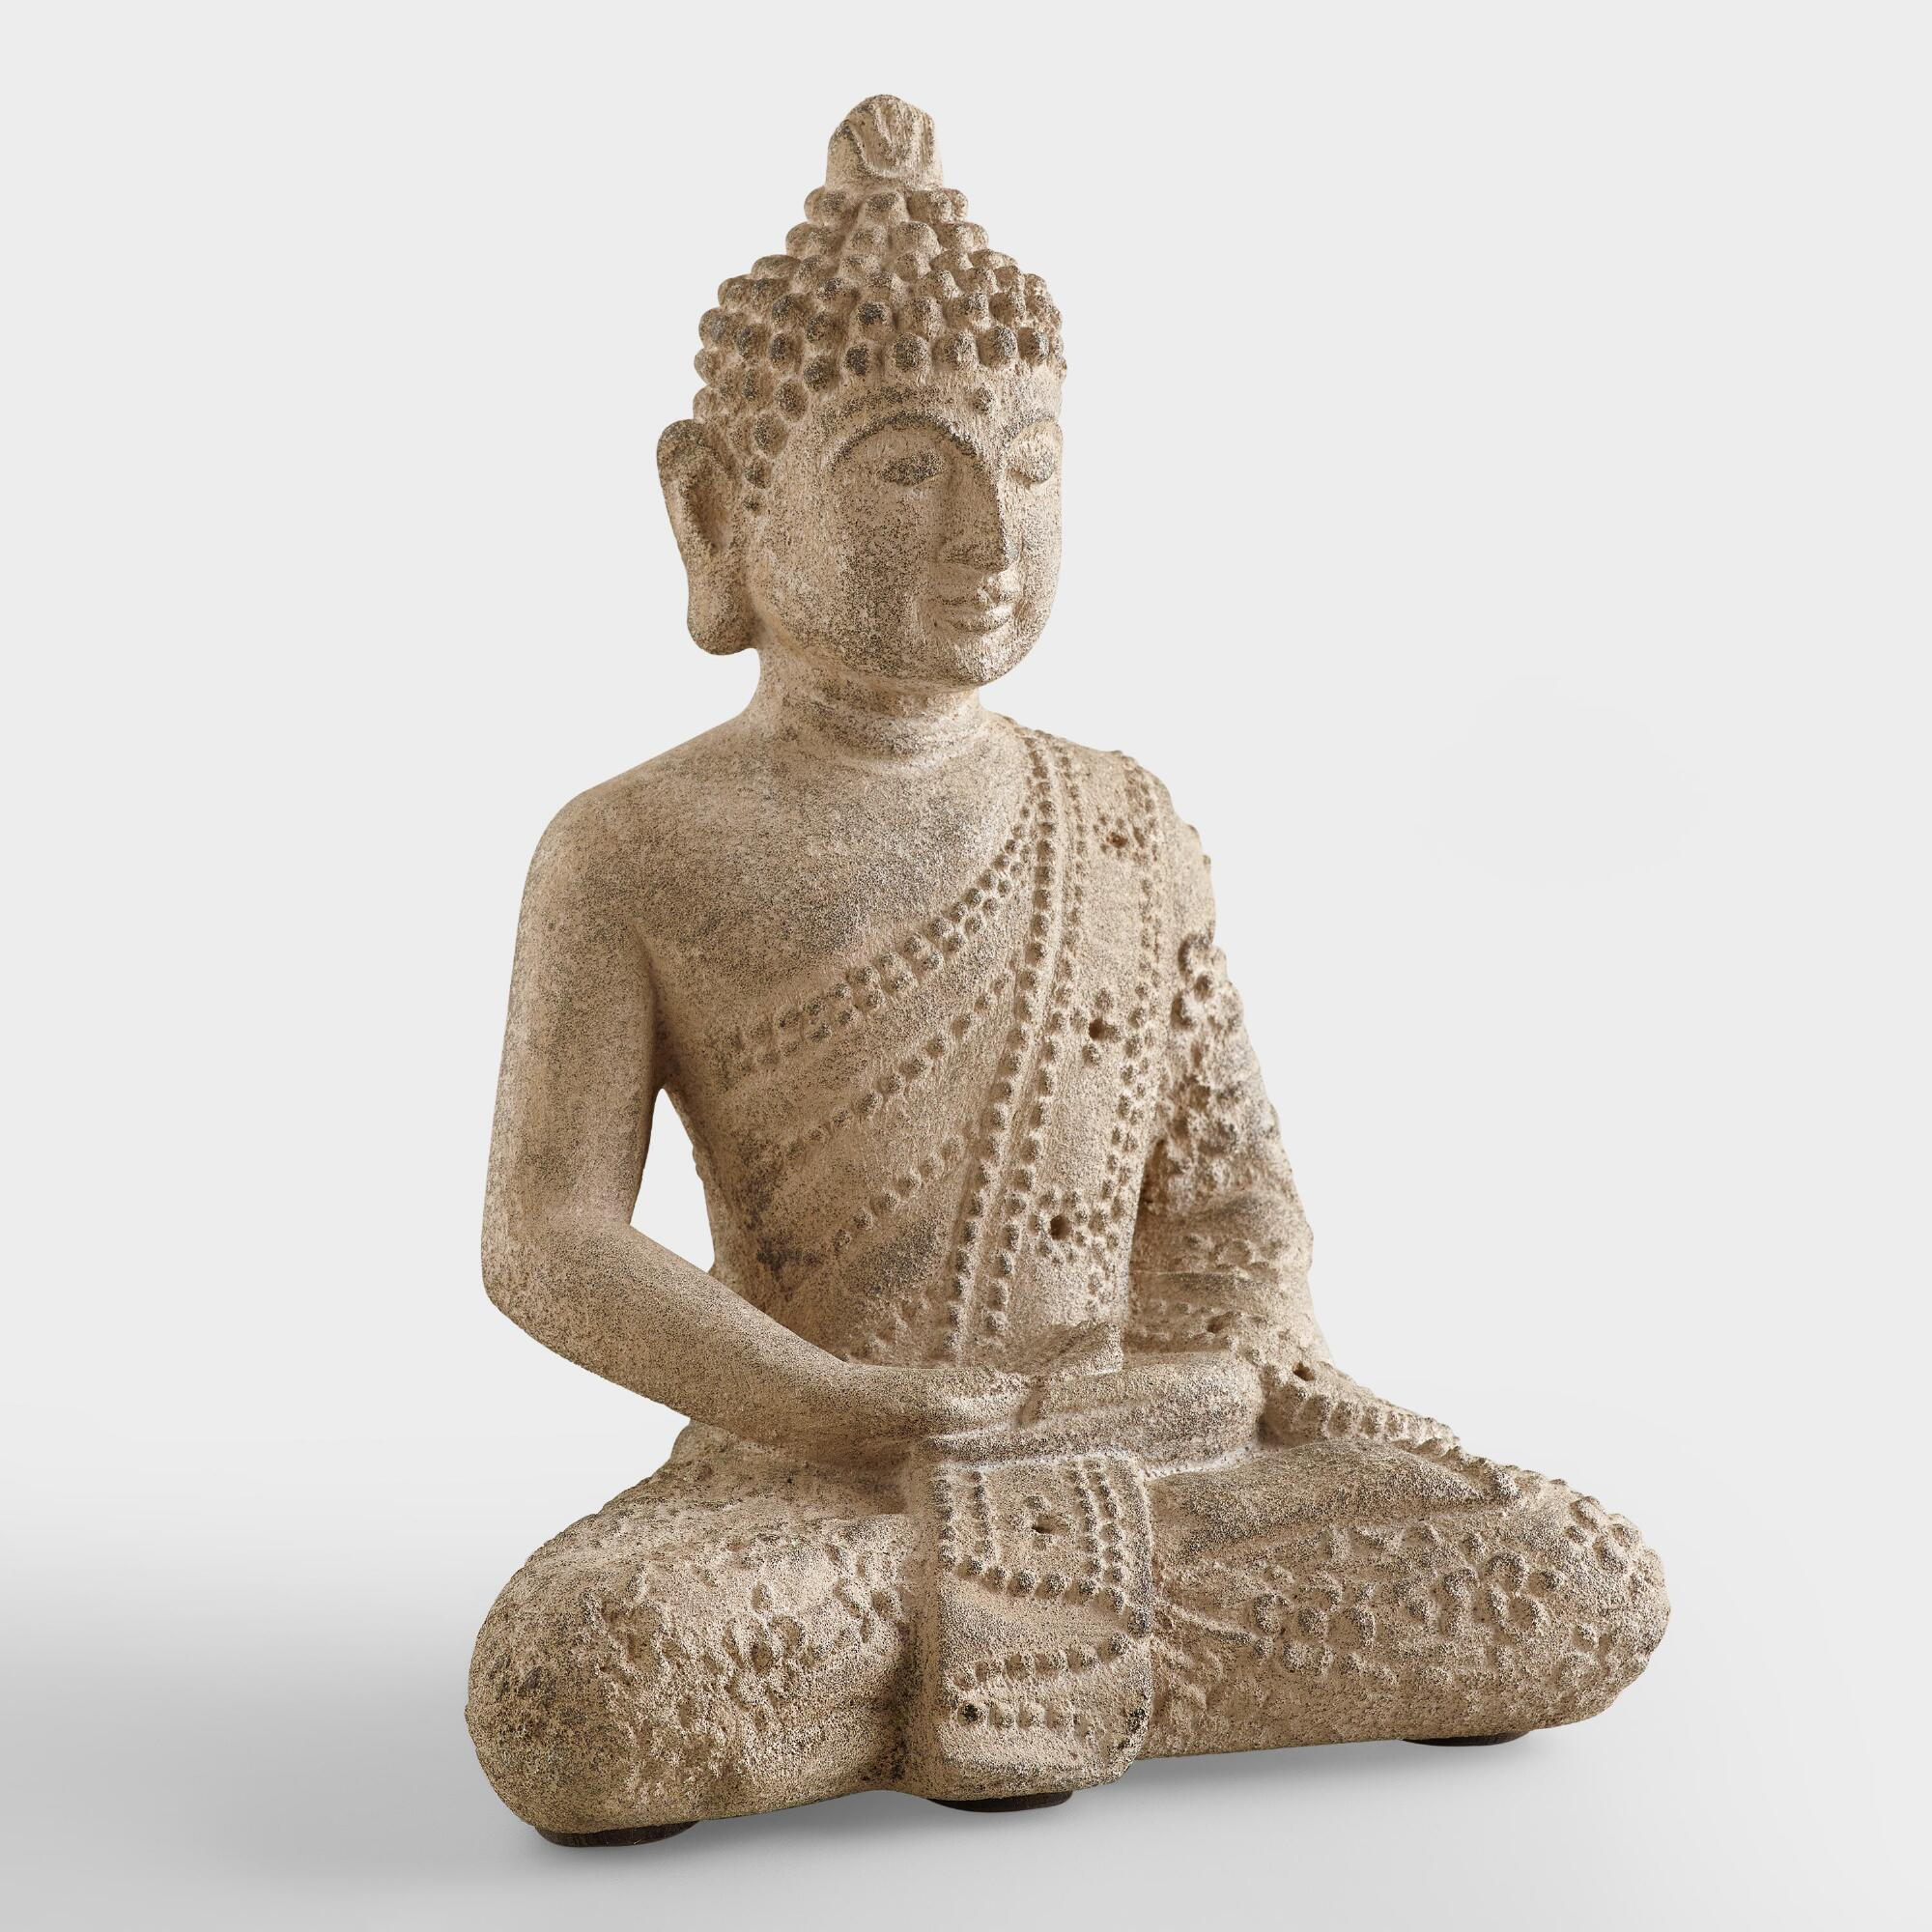 Outdoor Lighting Stores picture on Outdoor Lighting Storessitting meditation buddha.do with Outdoor Lighting Stores, Outdoor Lighting ideas ba48e3bddfd8b7160acdedcad3055780